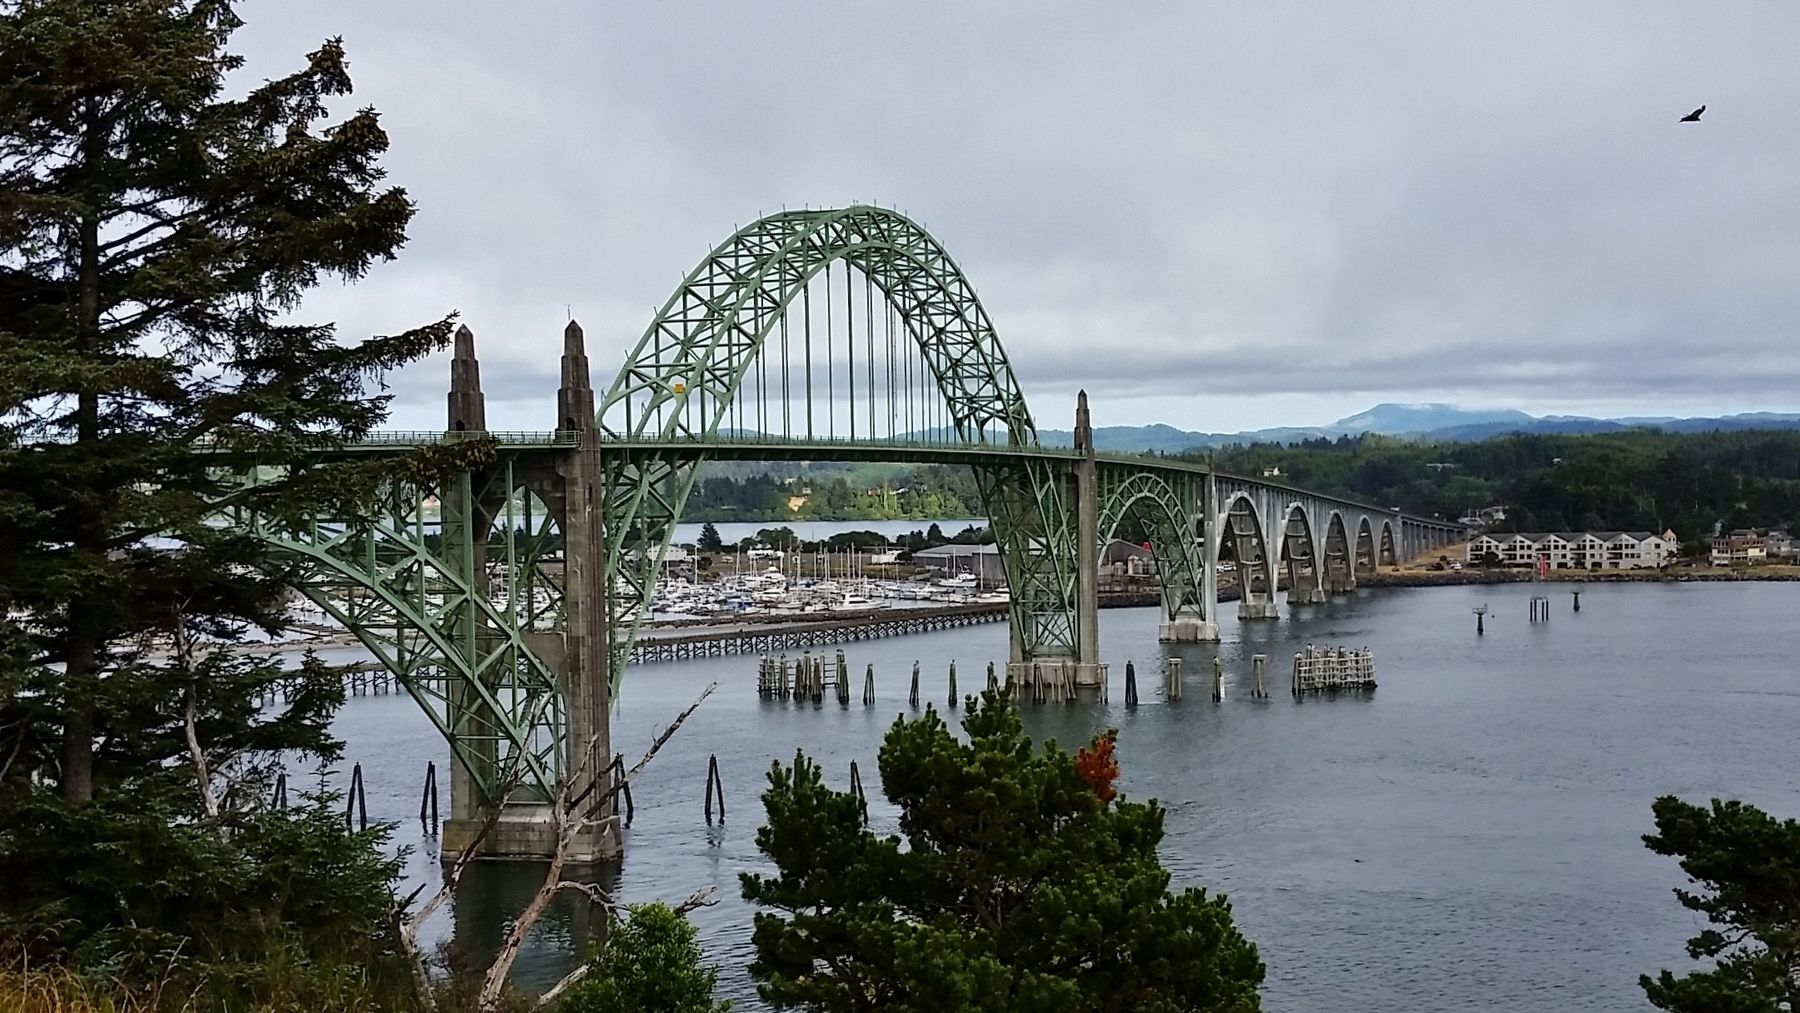 Yaquina Bay Bridge (<i>view from near marker</i>) image. Click for full size.